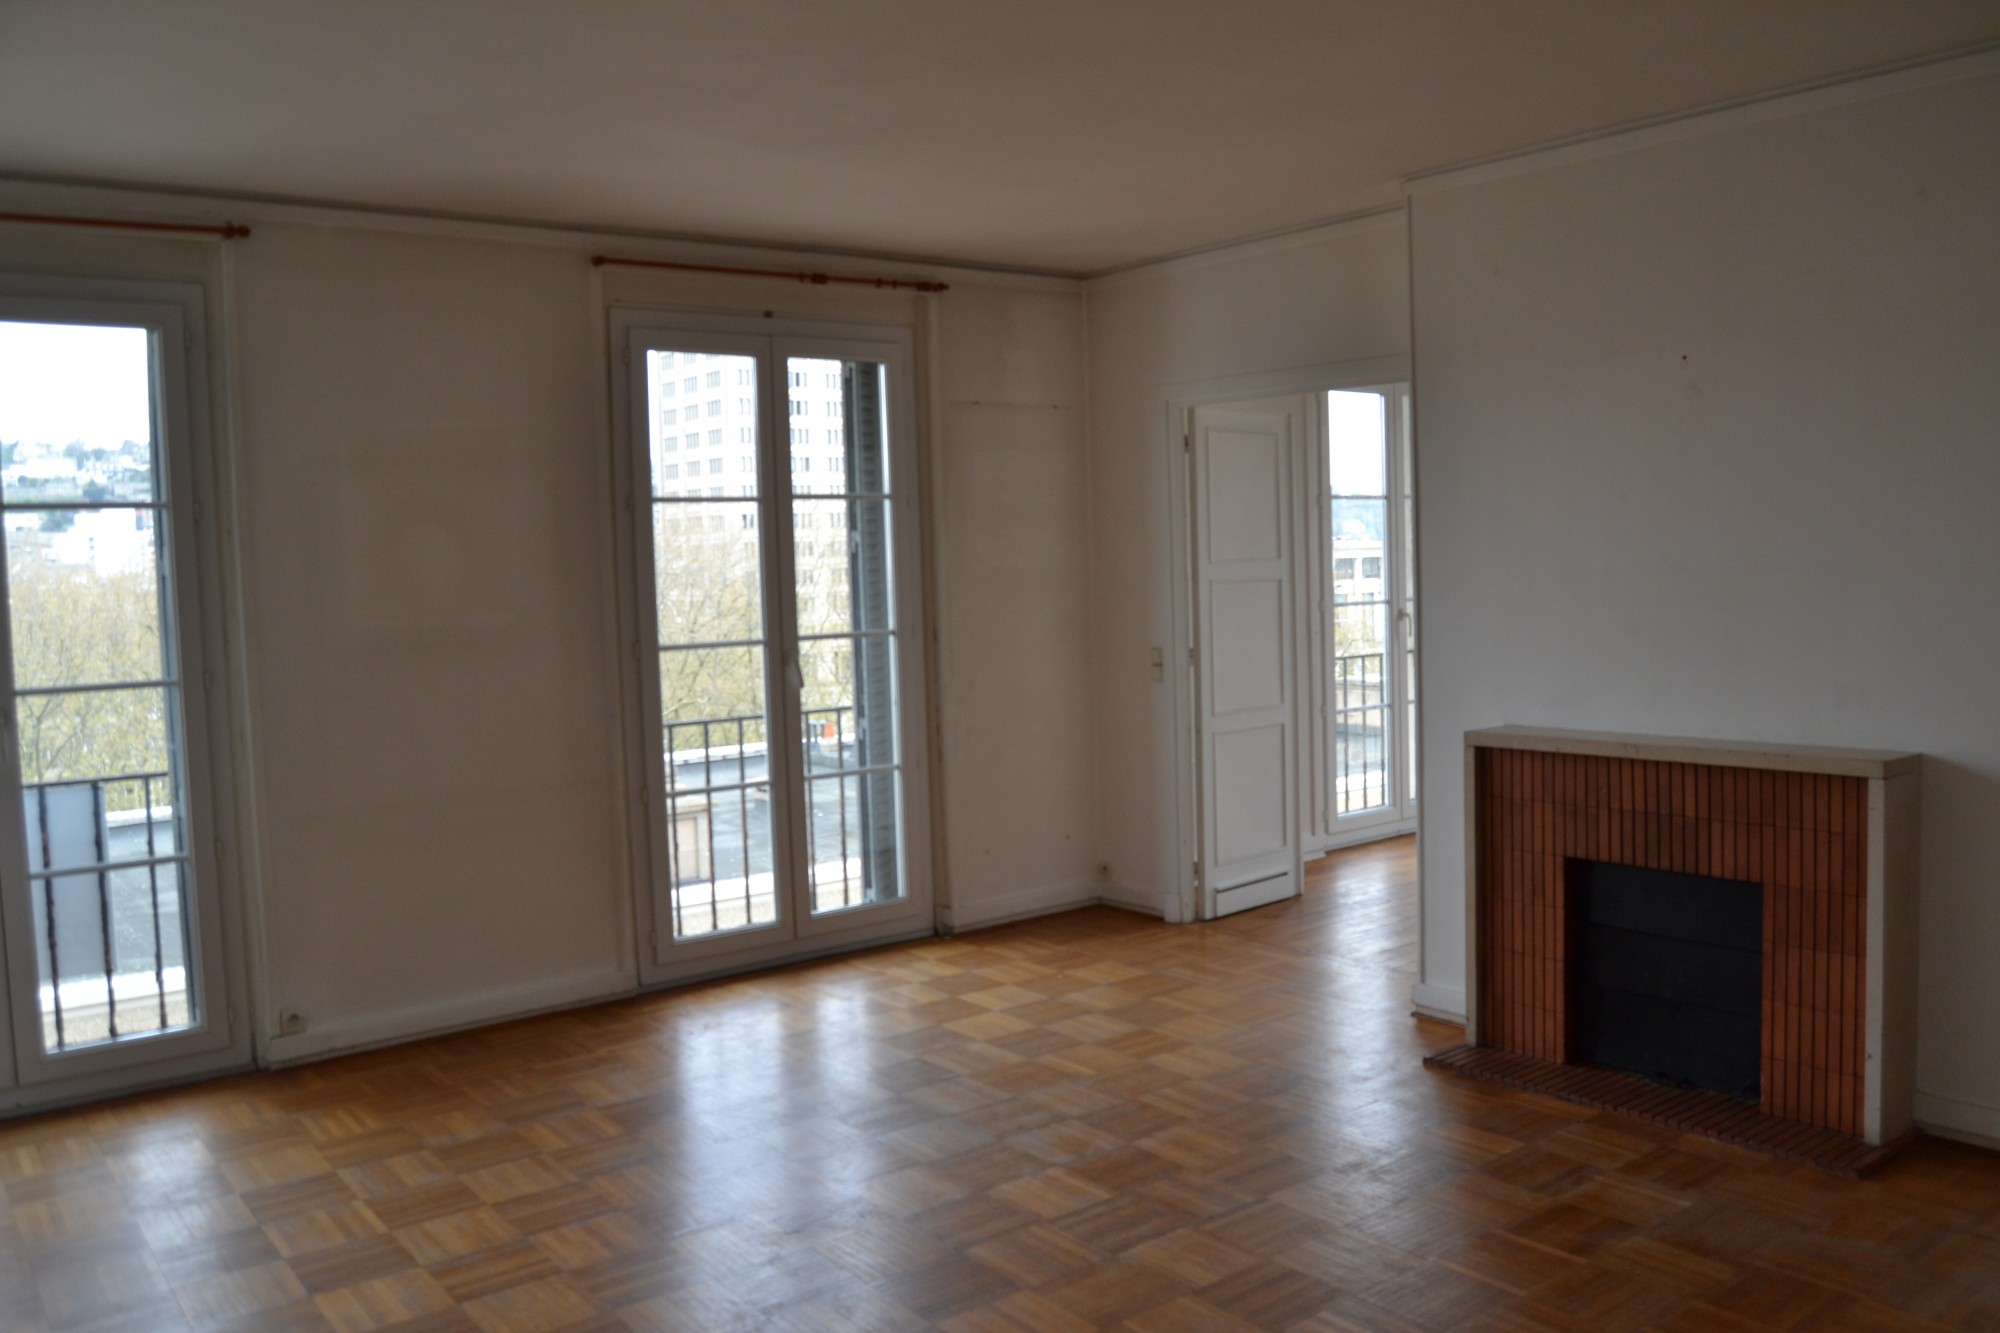 Ventes appartement de type f4 t4 f4 le havre hotel de for Appartement immobilier